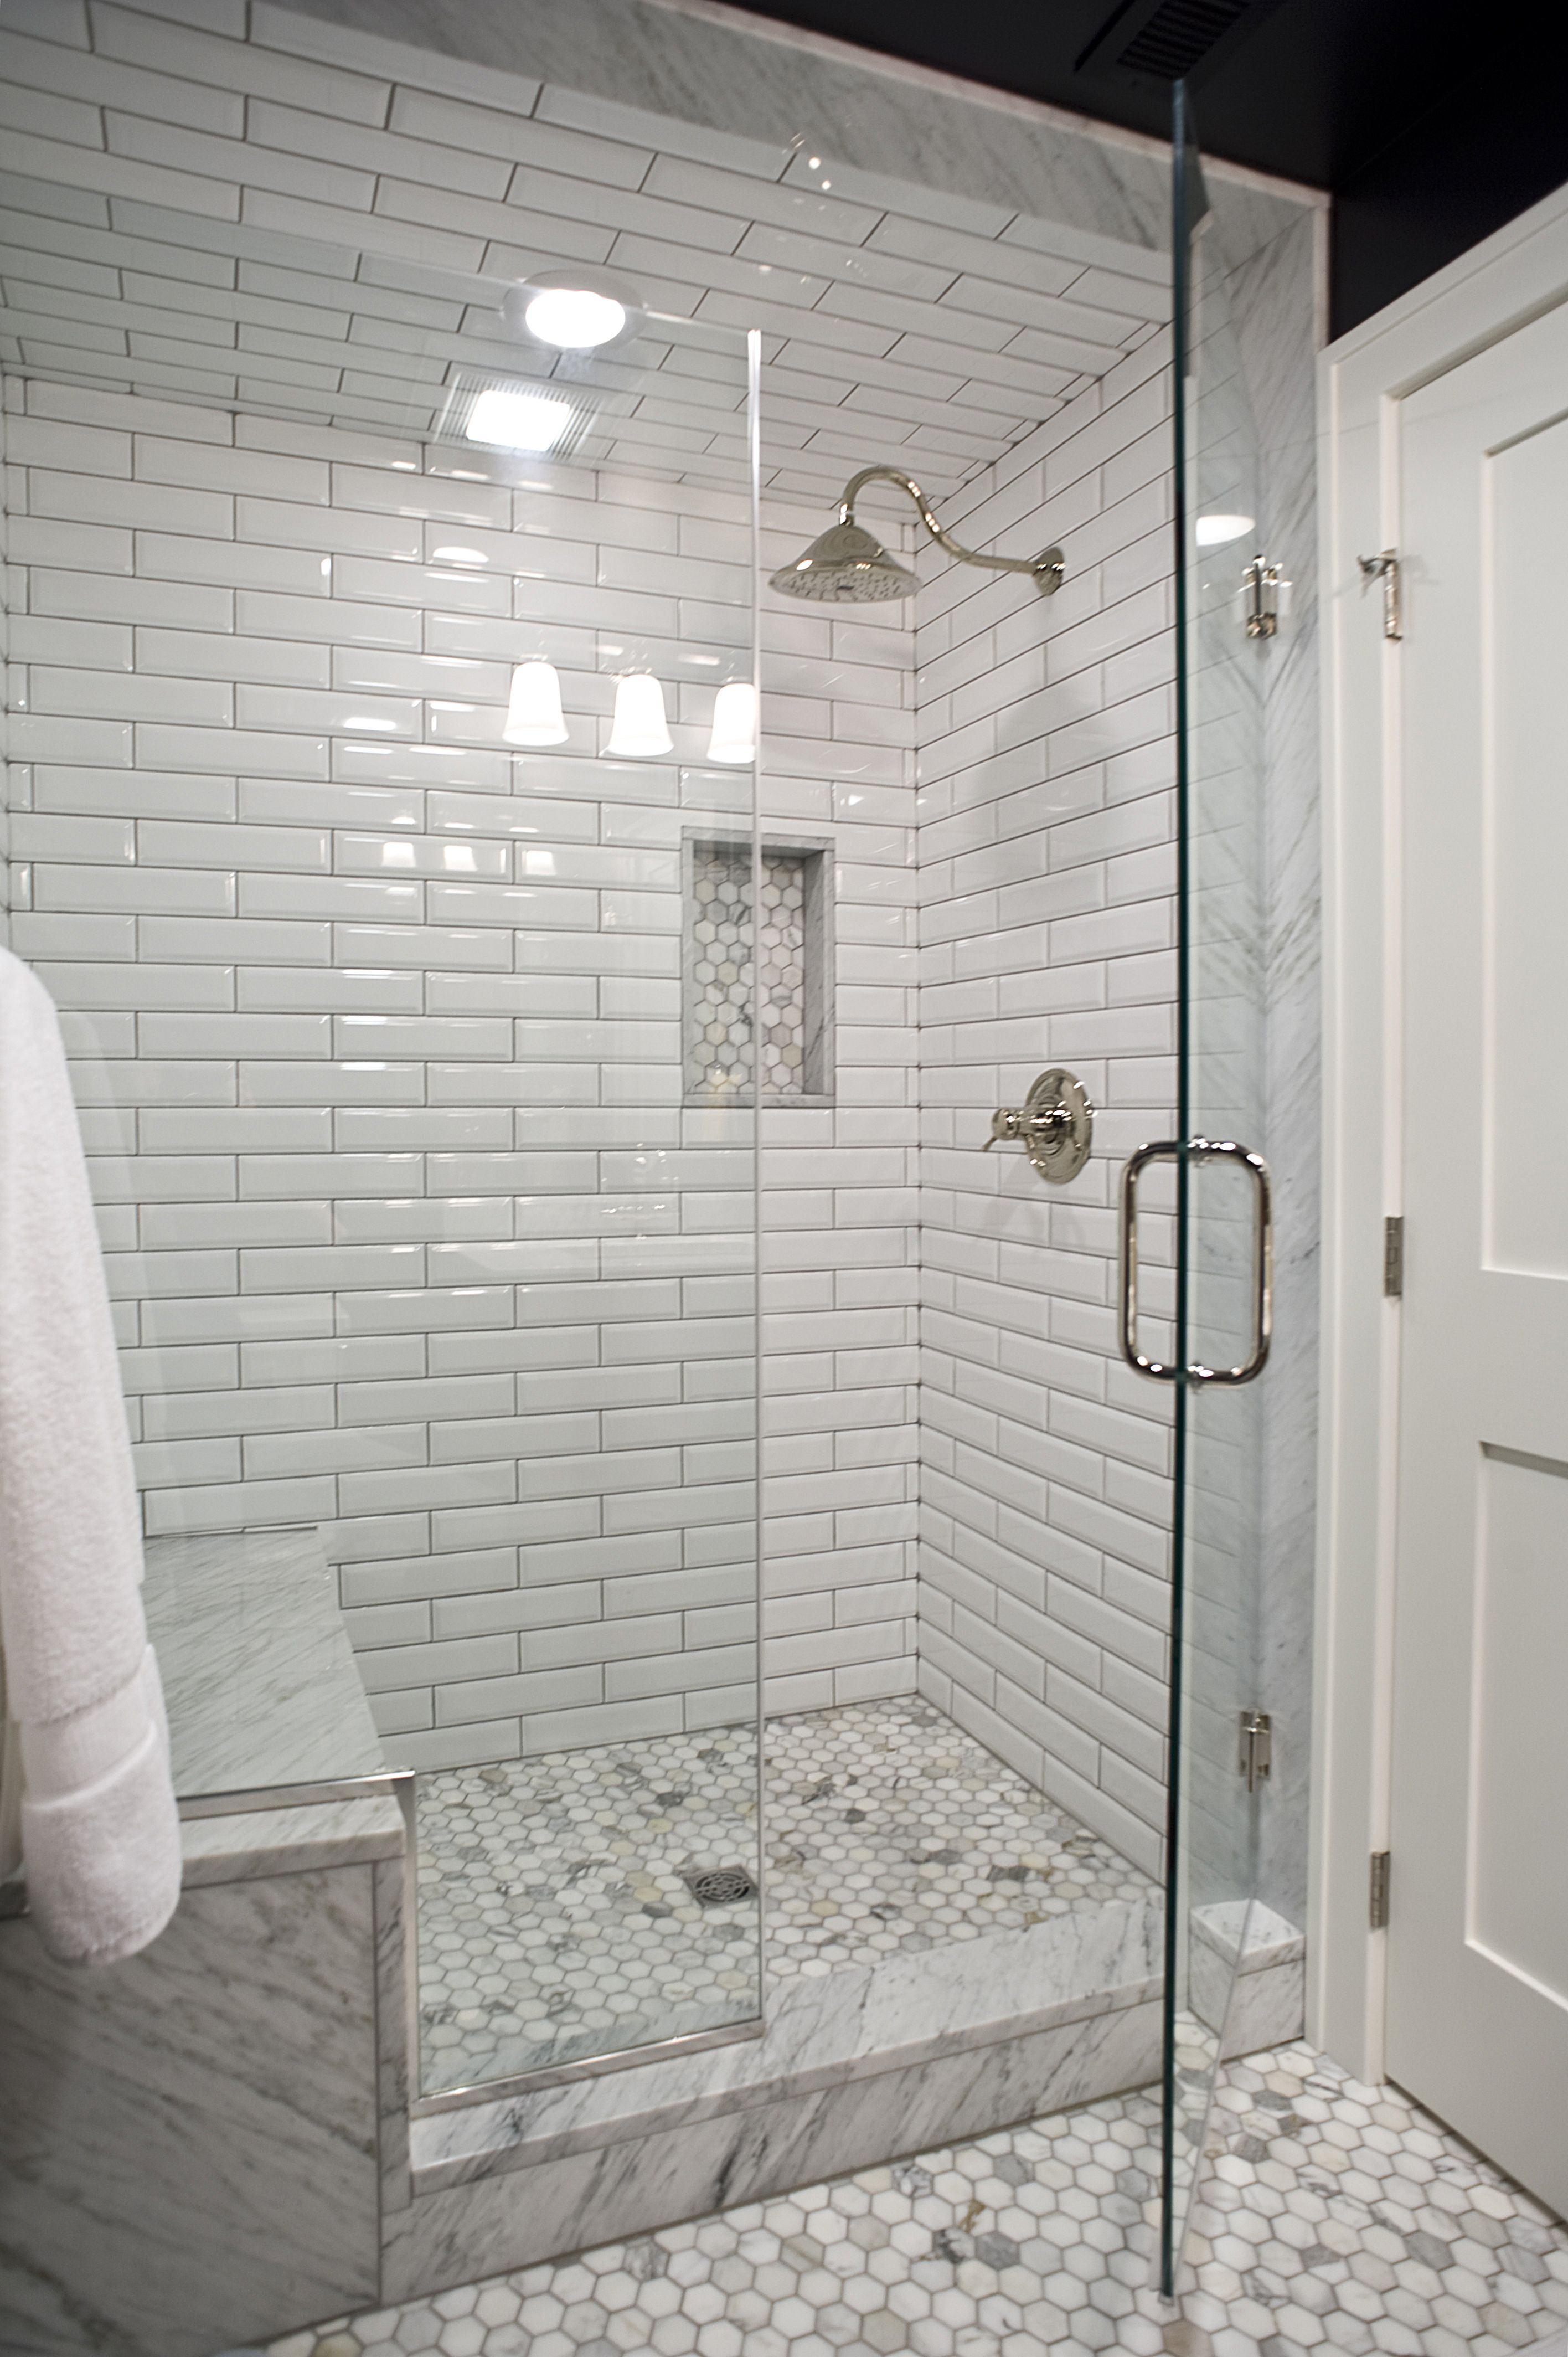 Marble Guest Bathroom Ideas : Lower level guest bathroom remodel by vivid interior